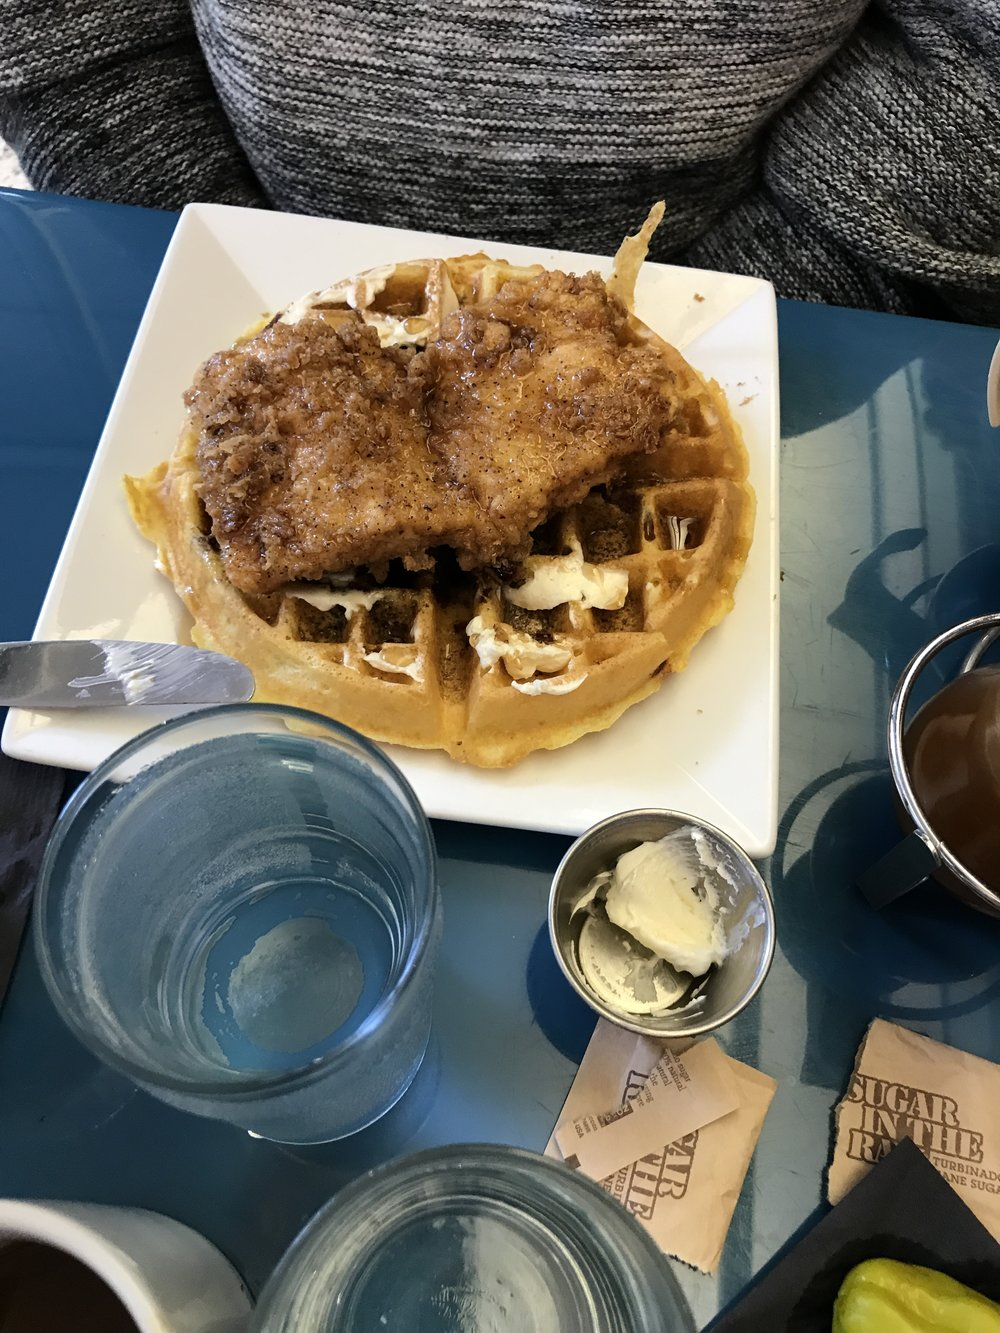 Jeff created his own chicken and waffle combo by pairing a bacon cornbread waffle with a fried chicken breast.  Truly a heavenly combo that had me hooked at bacon....